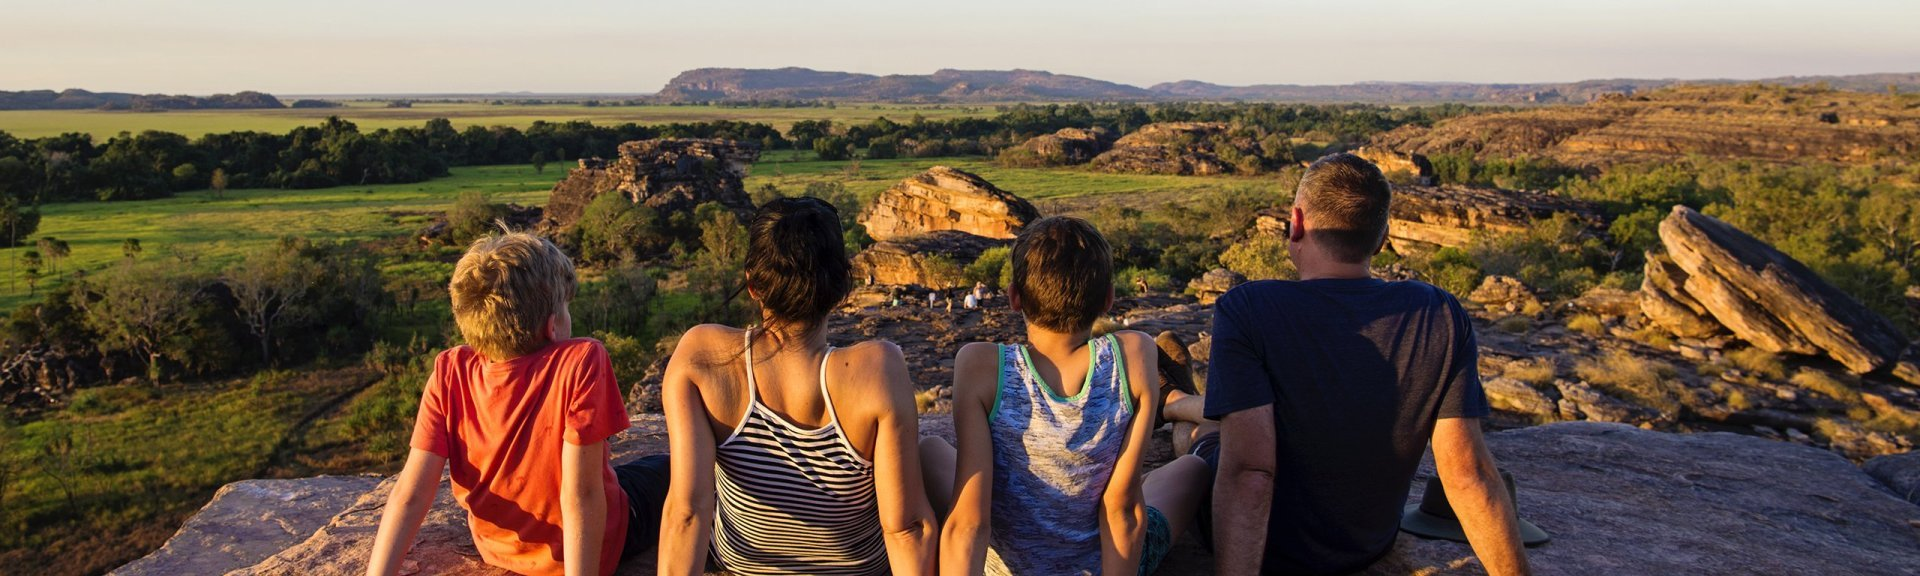 Family at Ubirr Lookout. Photo by Shaana McNaught, TourismNT.